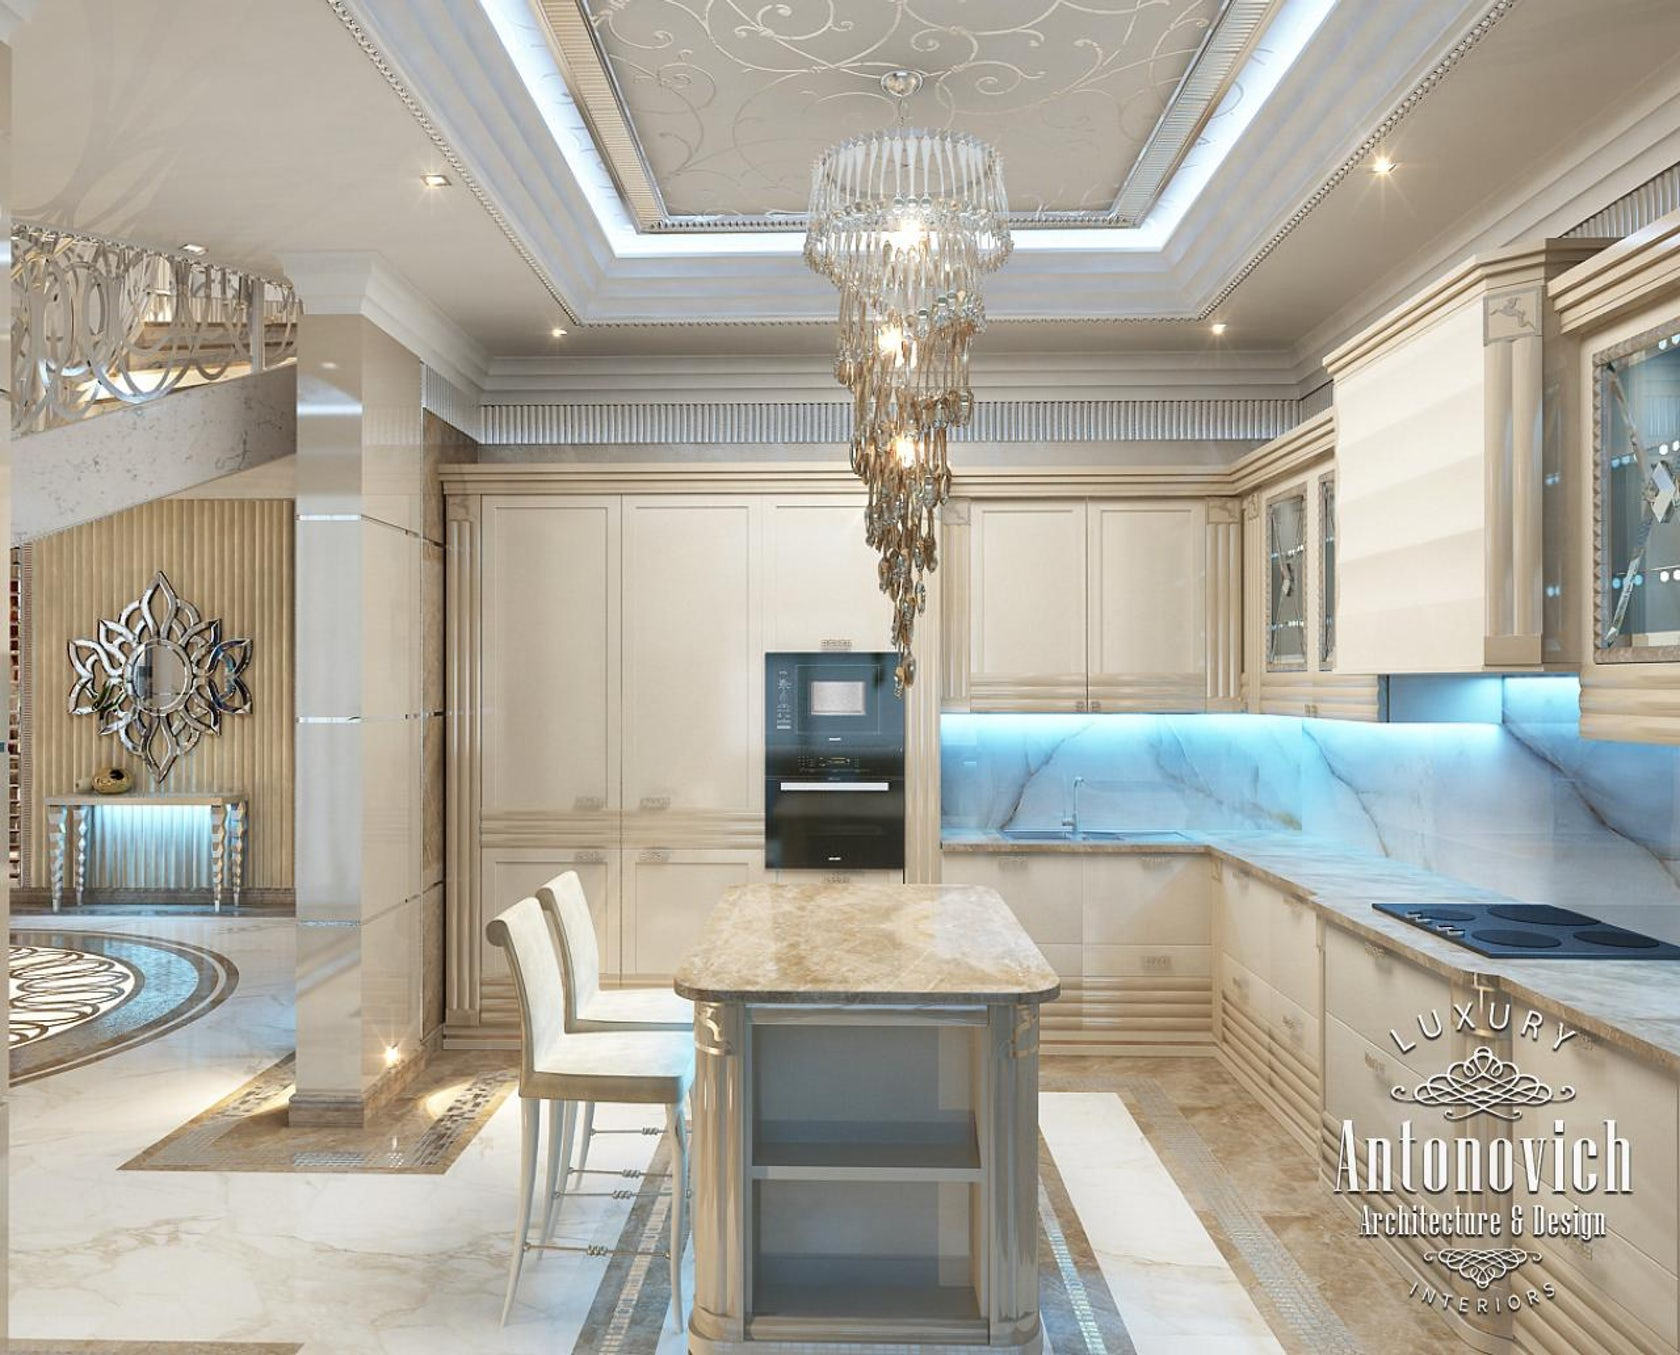 Luxury interior design dubai from katrina antonovich architizer for Dynamic kitchen design interiors